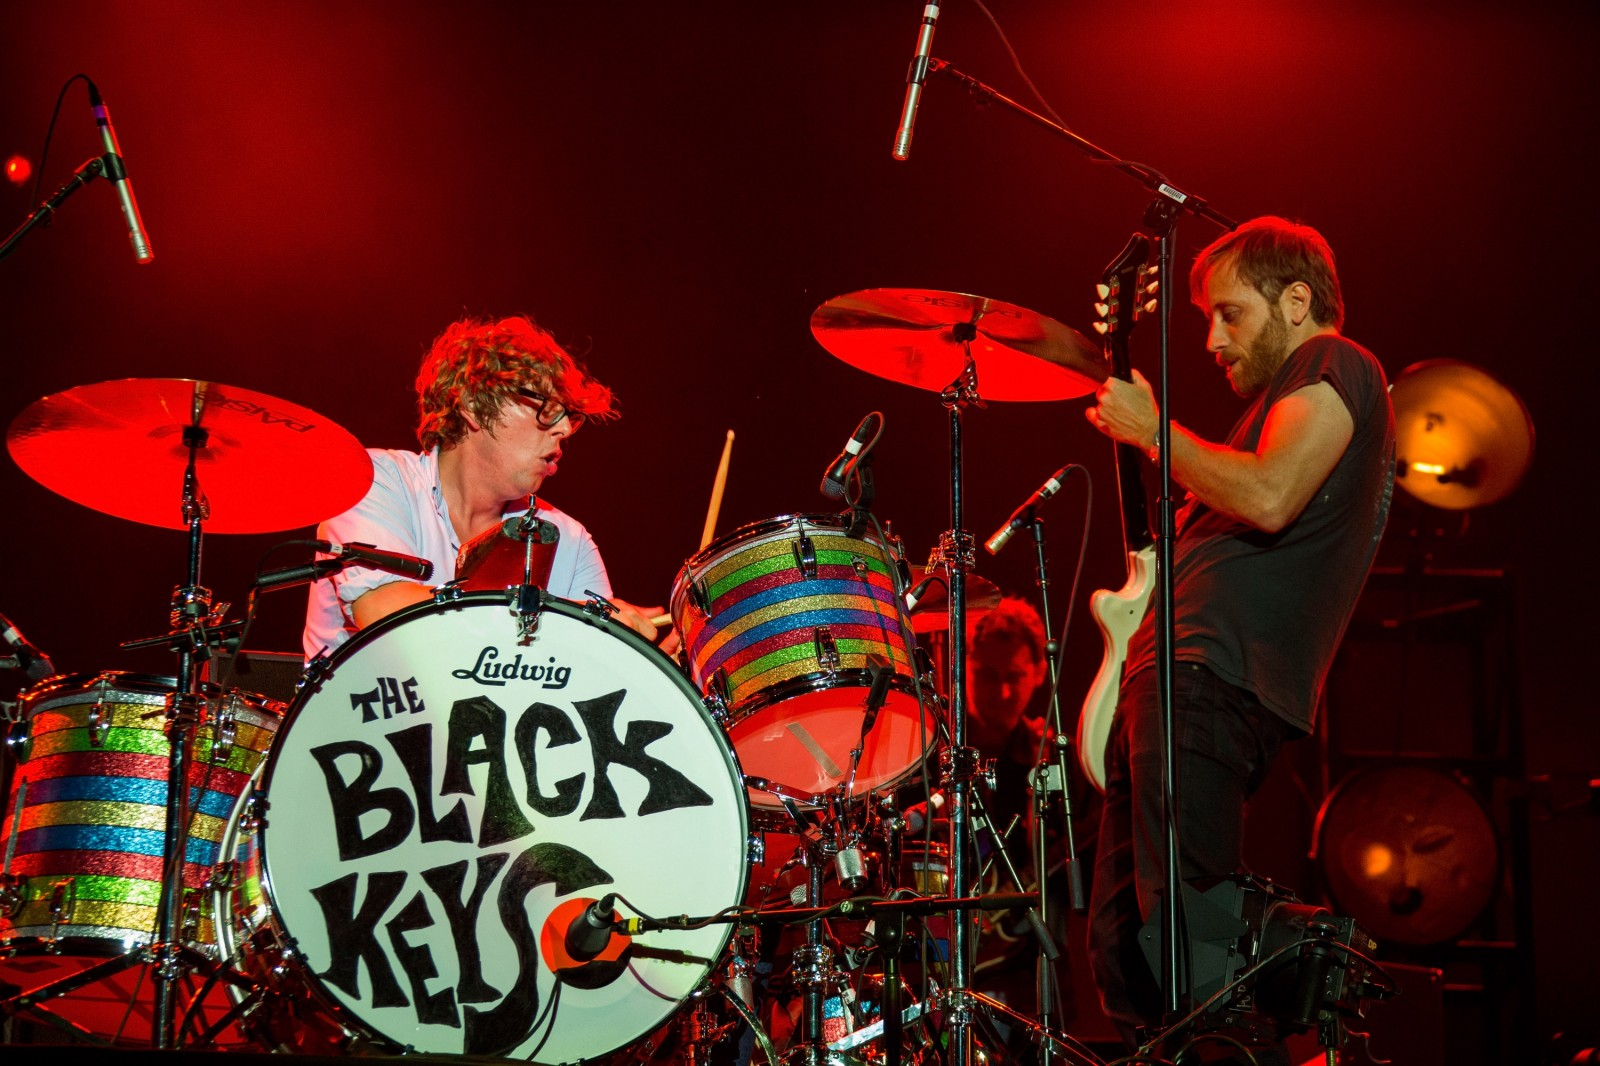 The Black Keys Cancel European Tour